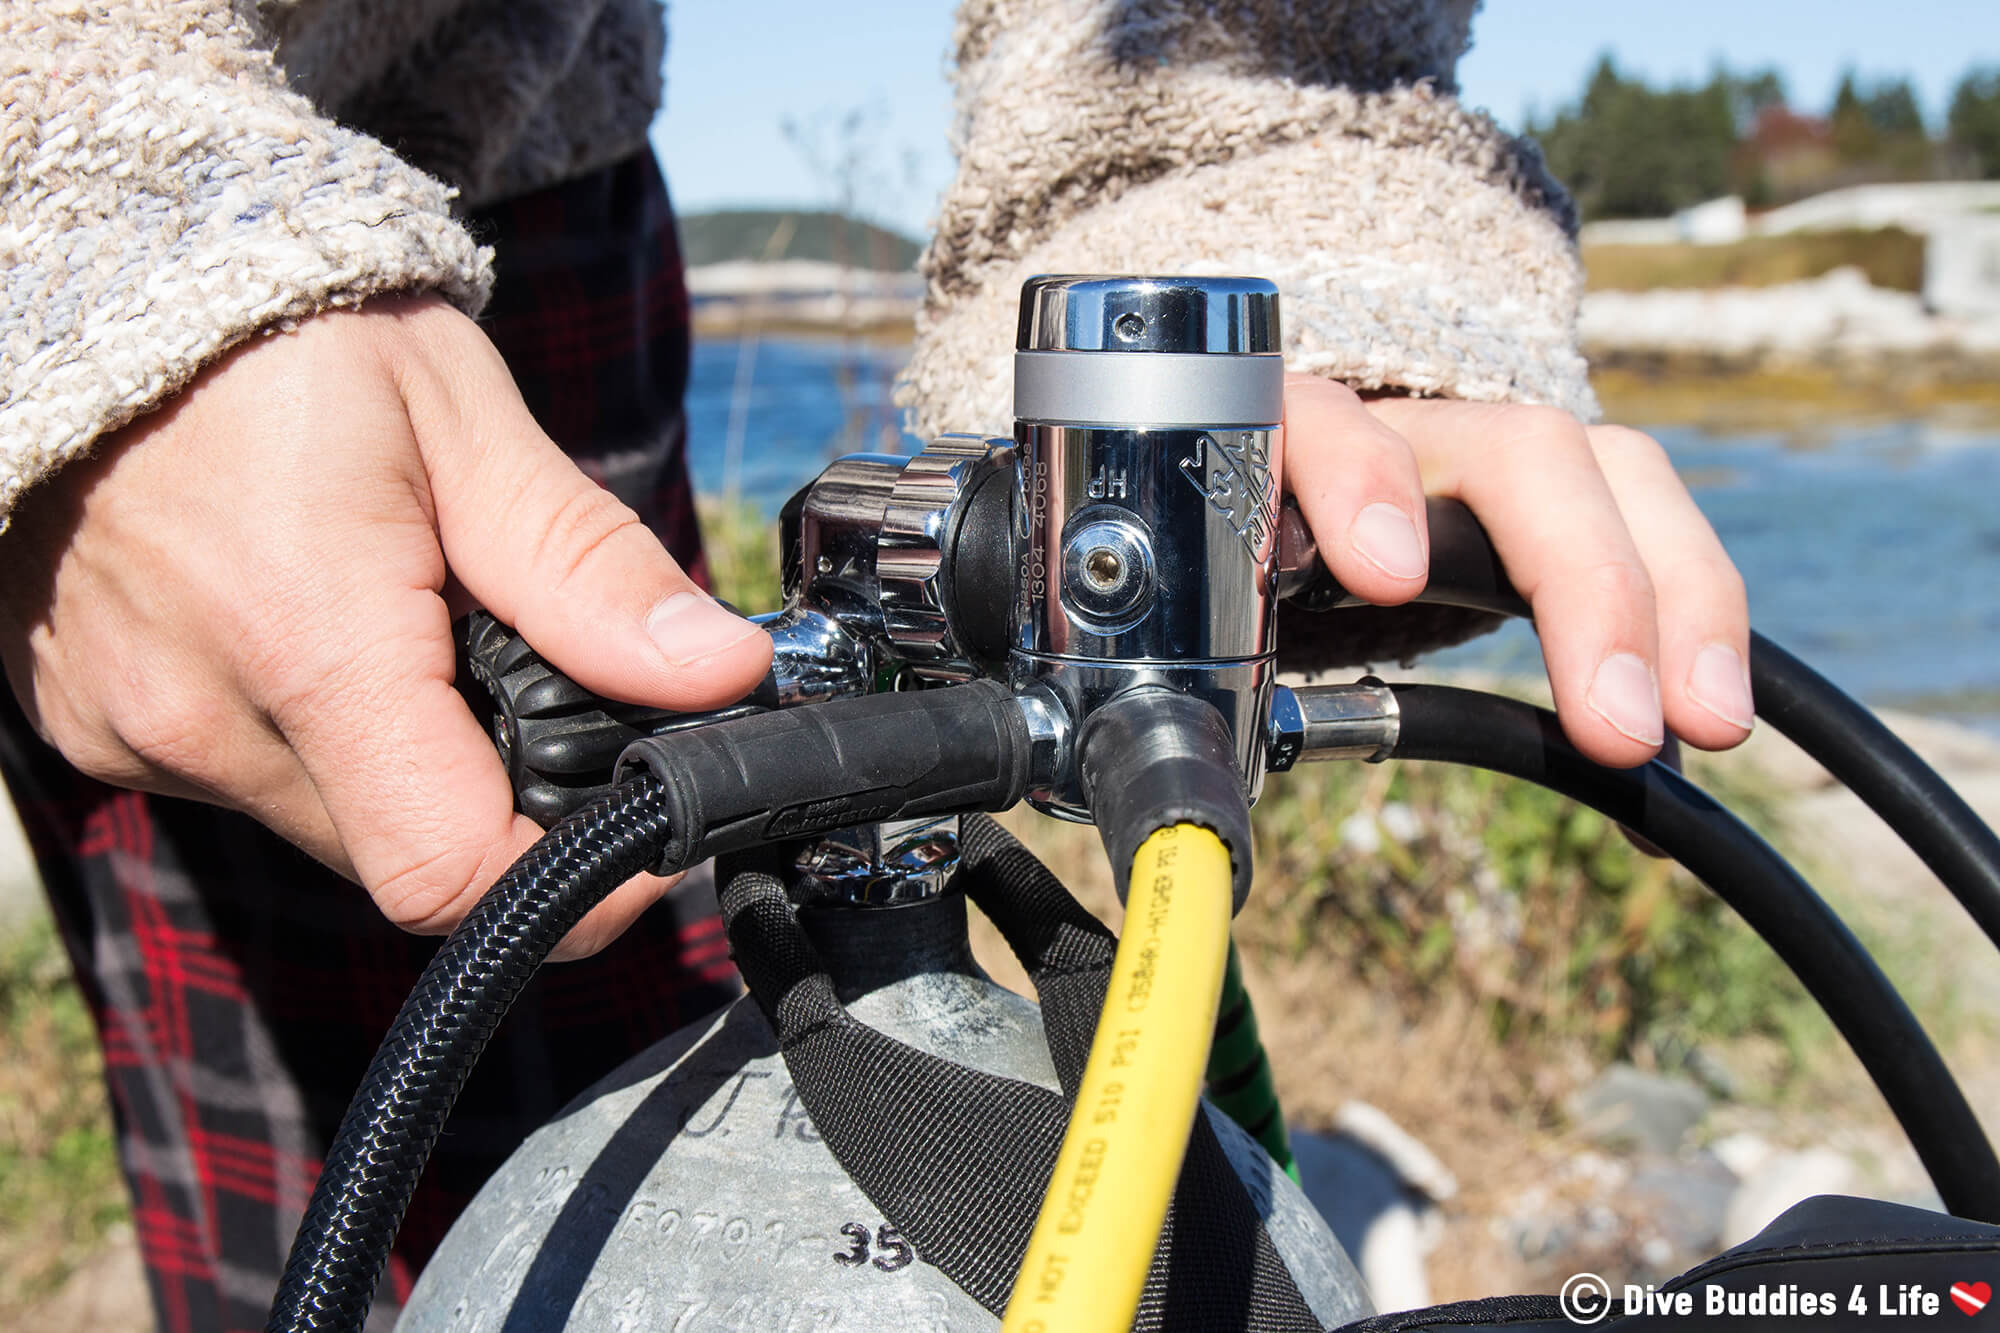 Joey Setting Up His Regulator And Tank For A Scuba Dive In New Brunswick, Canada